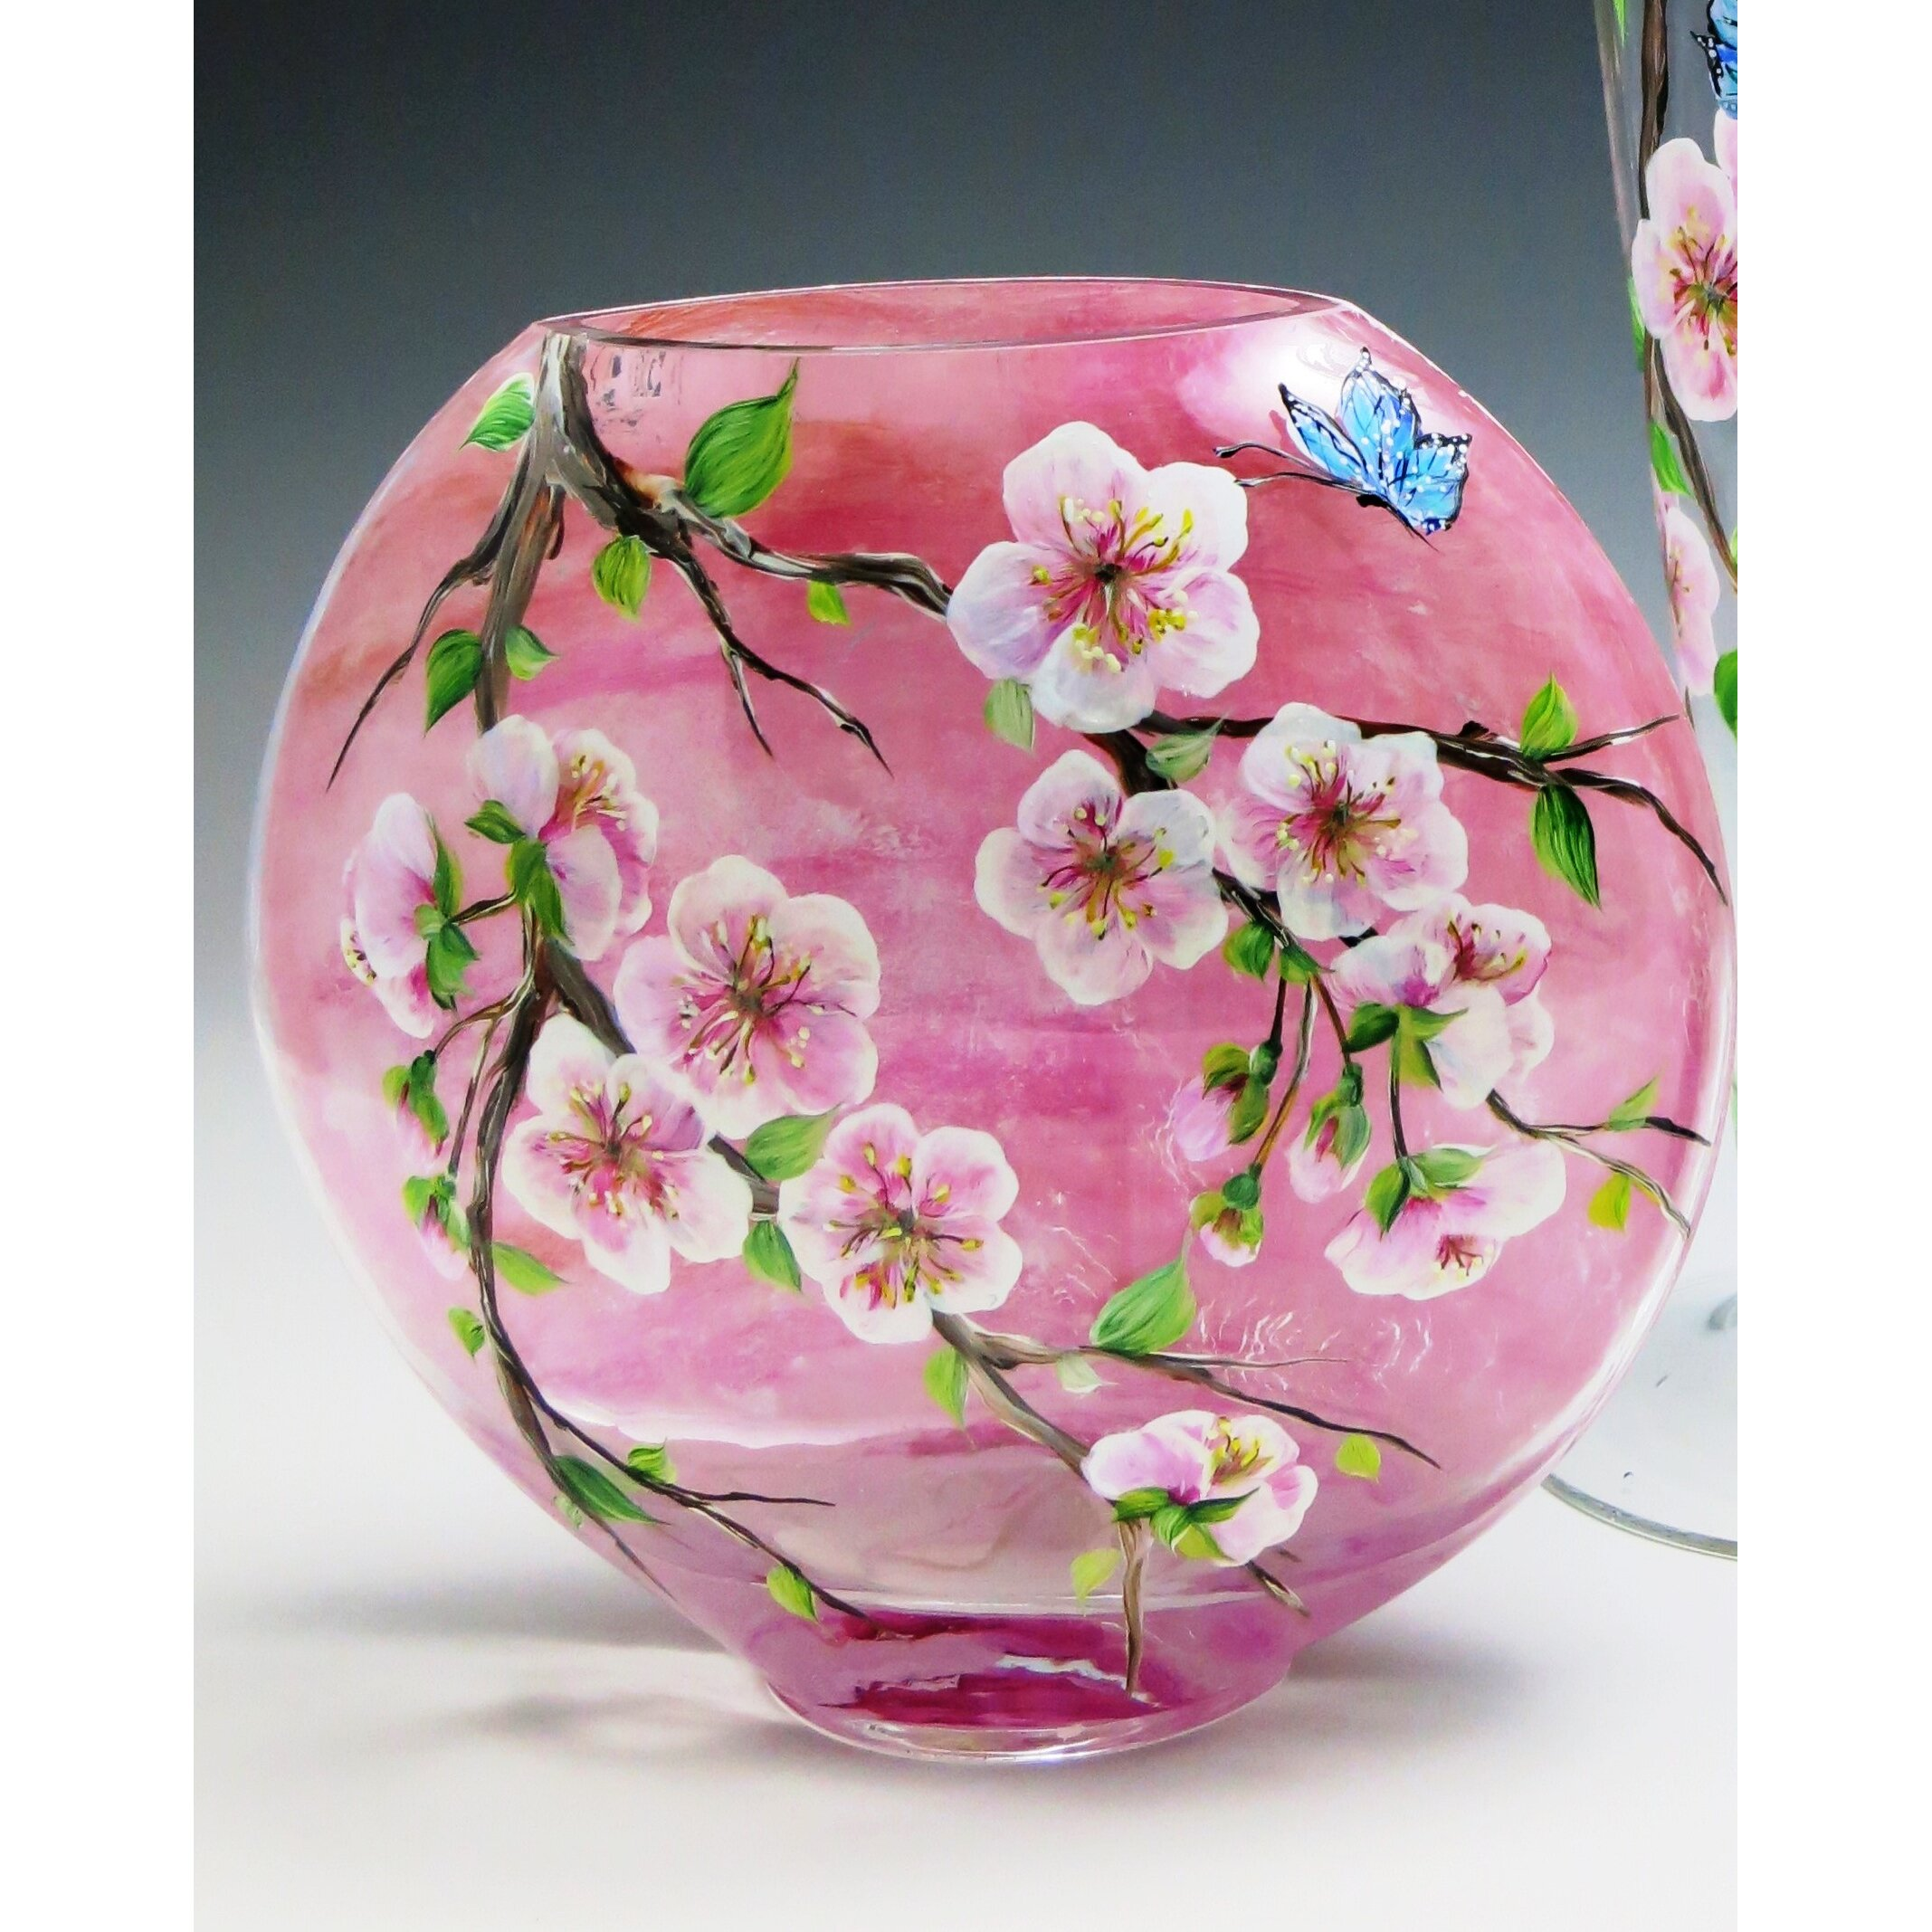 Painted Glass Vase Quot Cherry 28 Images Painted Glass Vase Blue Birds Cherry